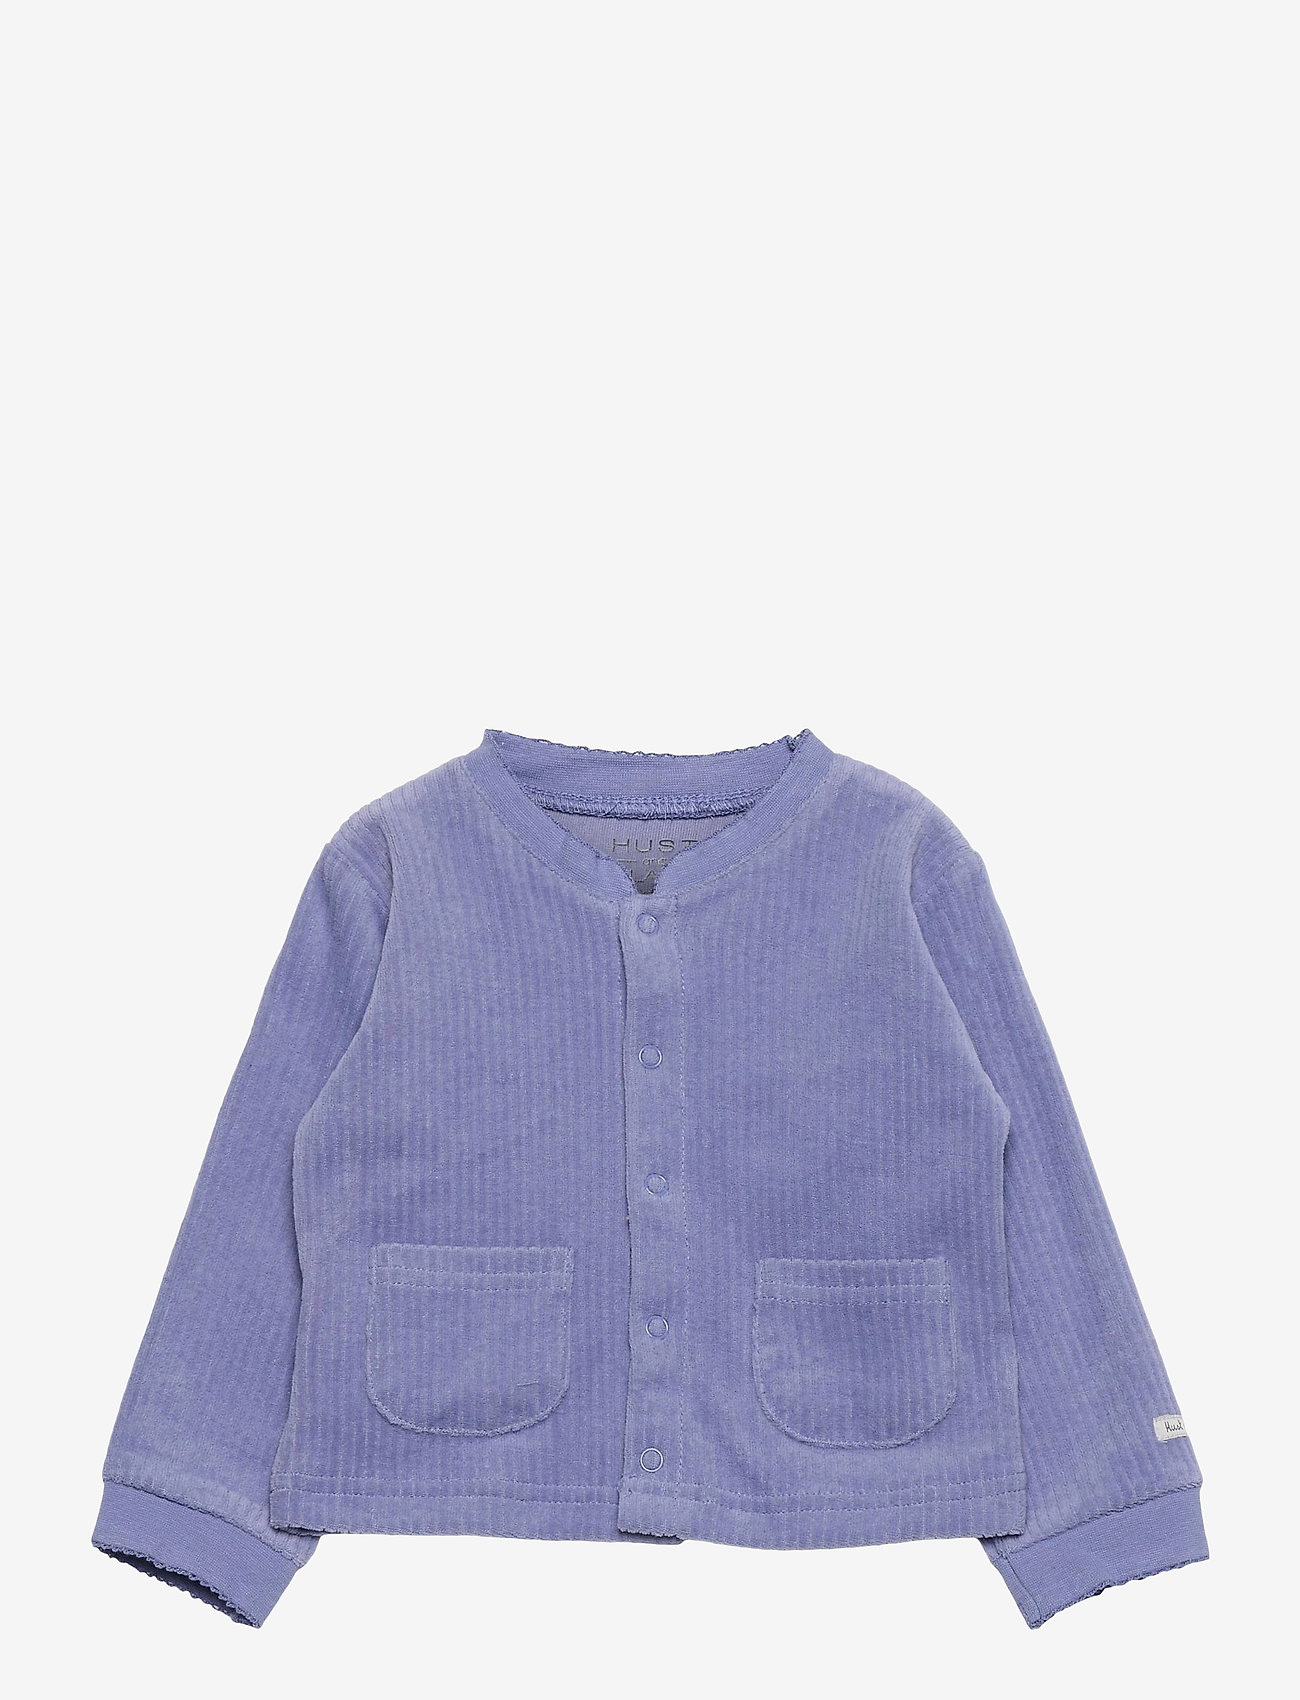 Hust & Claire - Casey - Cardigan - gilets - blue bell - 0